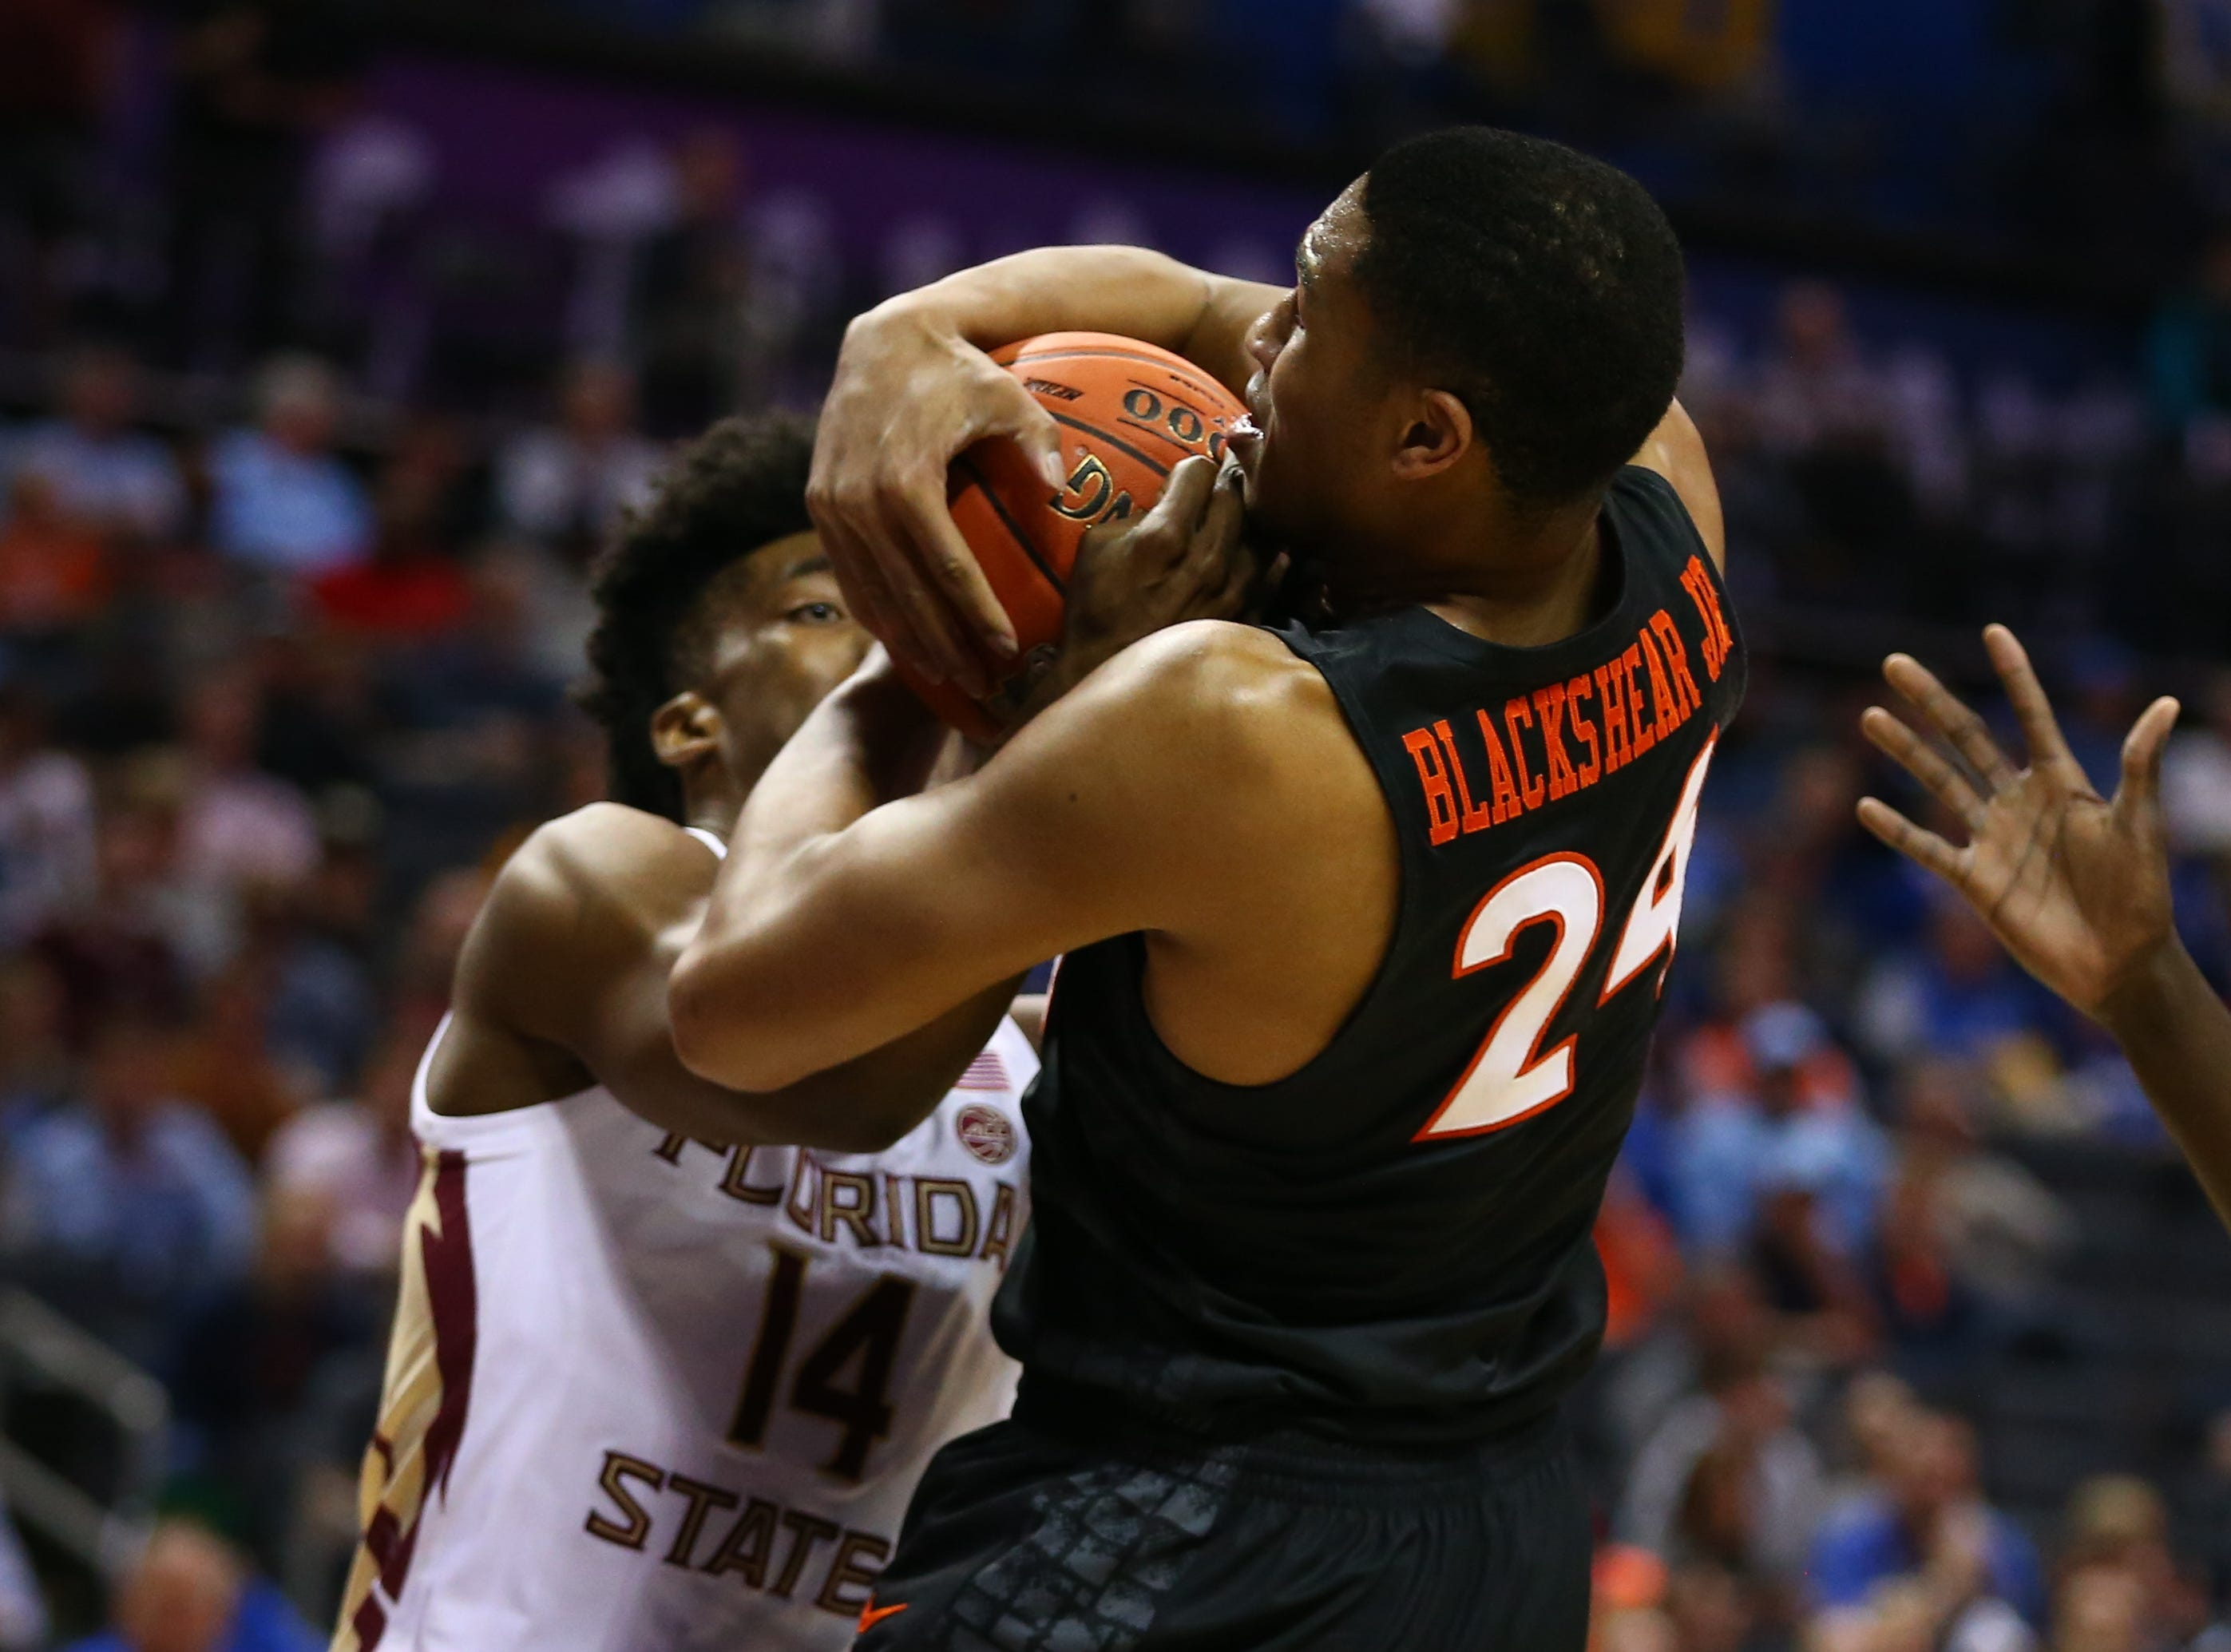 Mar 14, 2019; Charlotte, NC, USA; Virginia Tech Hokies forward Kerry Blackshear Jr. (24) and Florida State Seminoles guard Terance Mann (14) fight for possession in the first half in the ACC conference tournament at Spectrum Center. Mandatory Credit: Jeremy Brevard-USA TODAY Sports